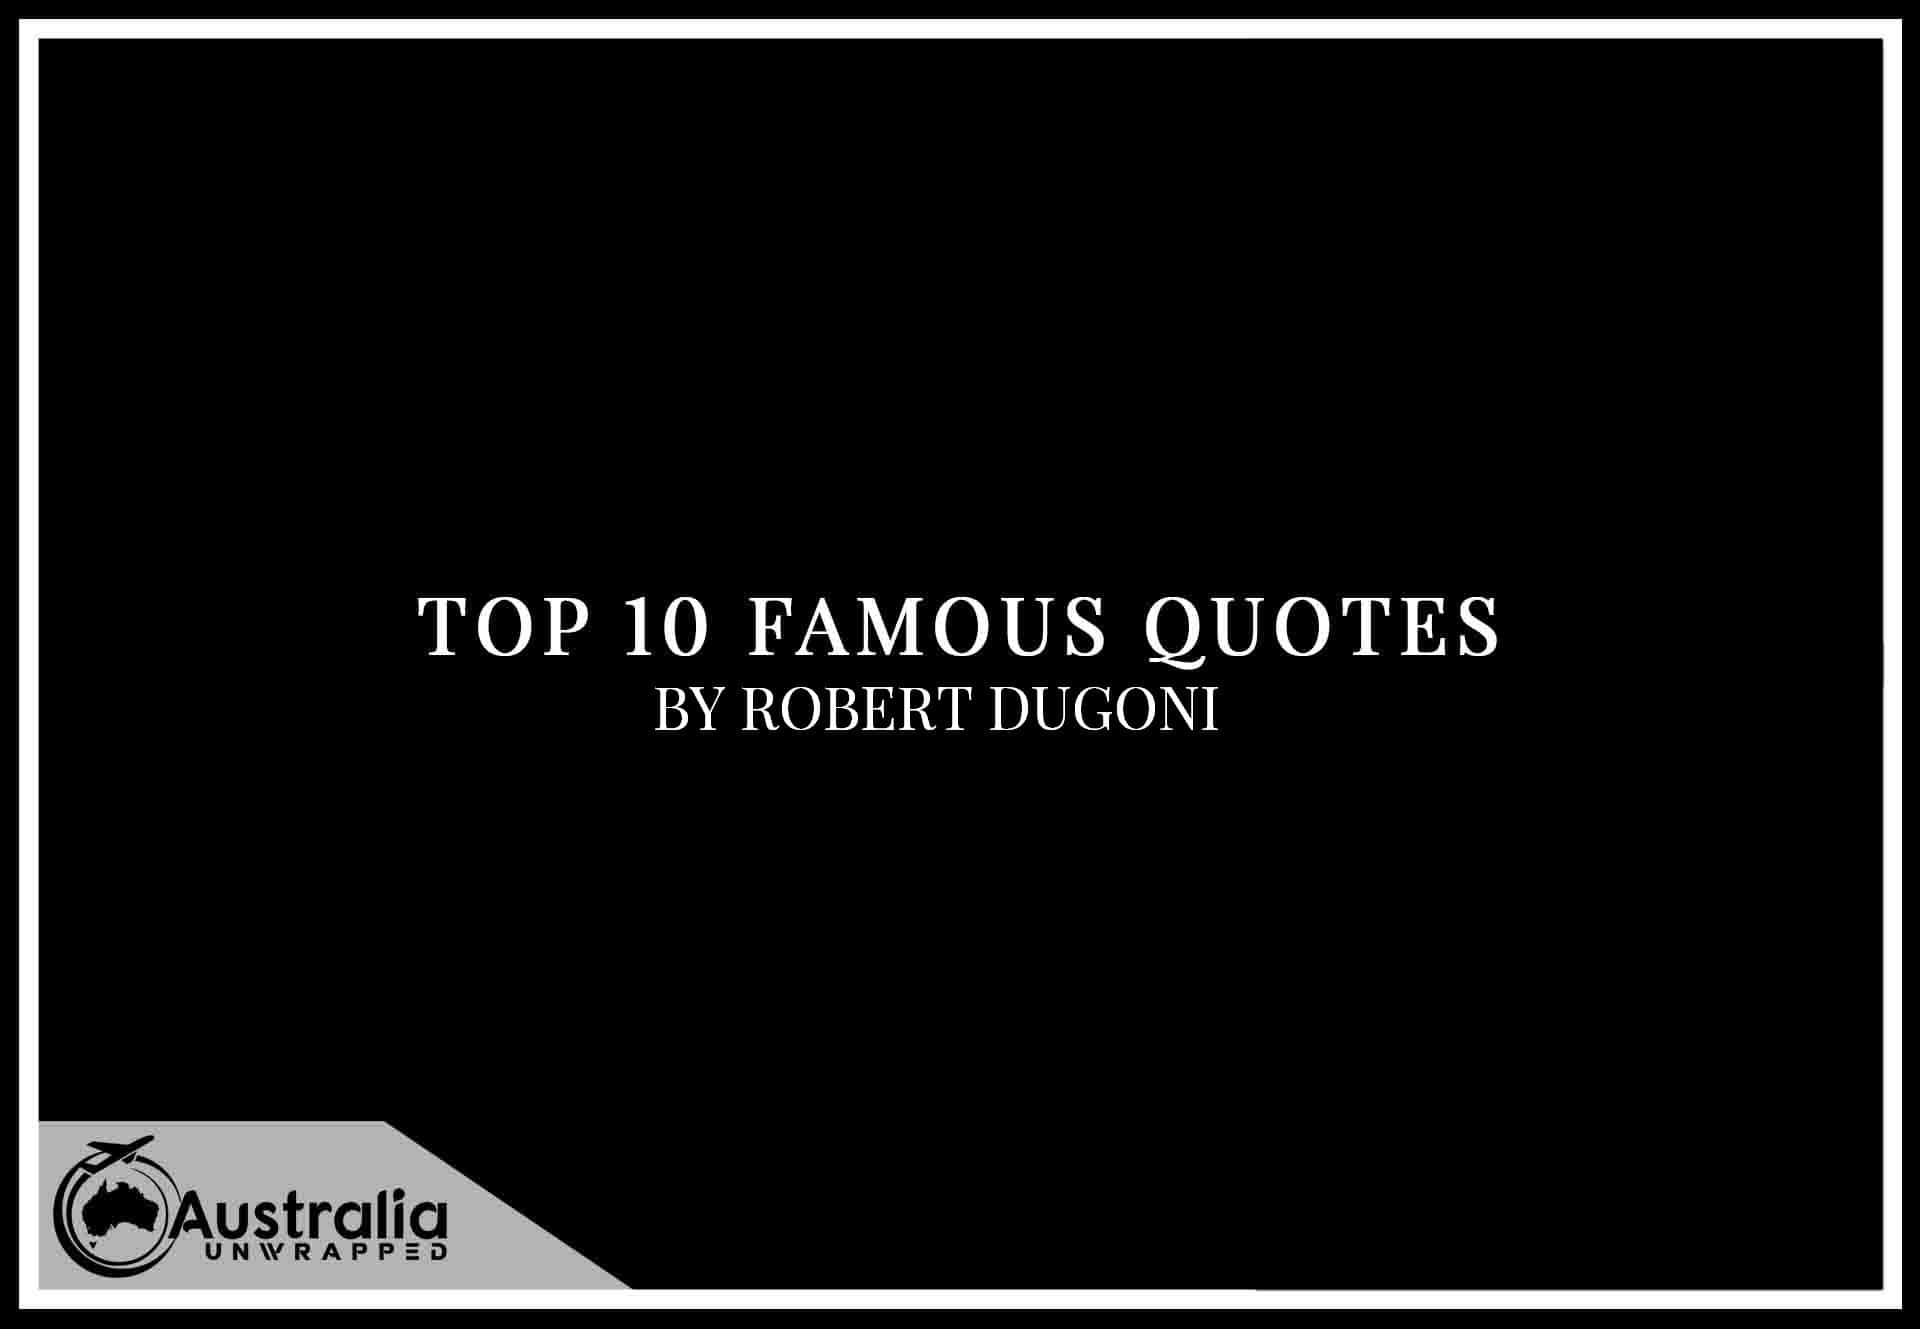 Robert Dugoni's Top 10 Popular and Famous Quotes